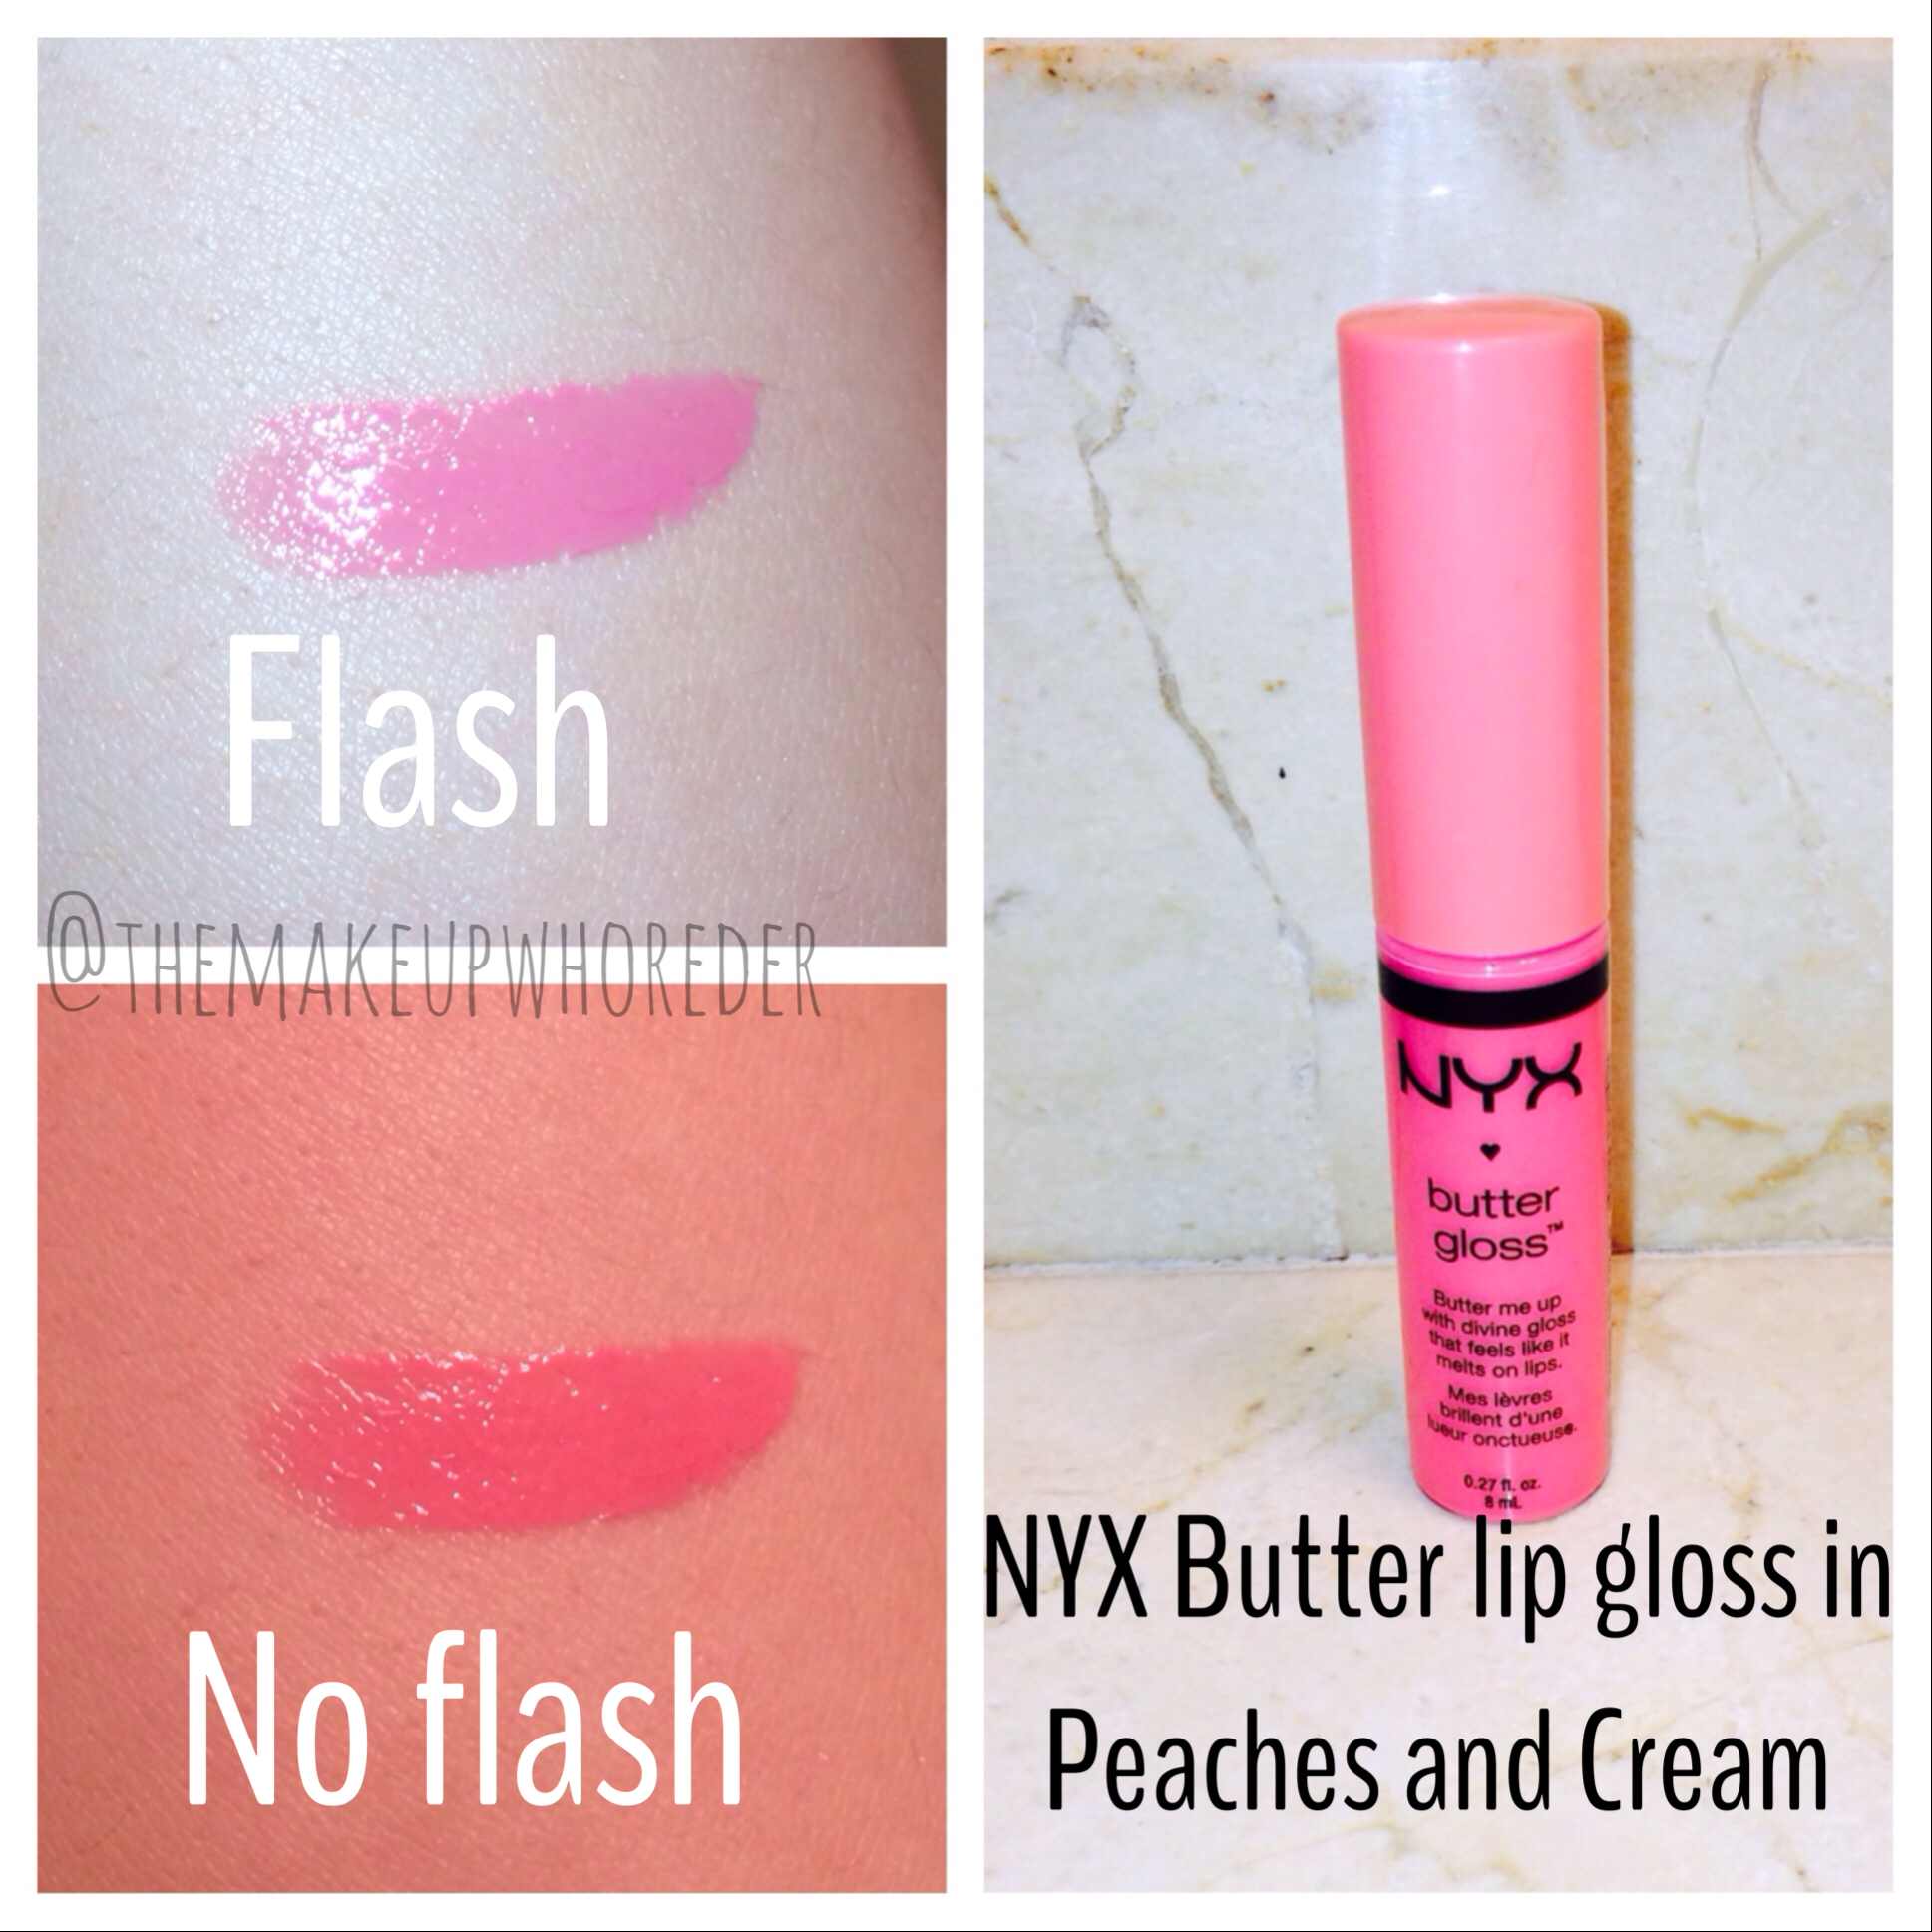 Swatch Nyx Butter Gloss In Peaches And Cream Themakeupwhoreder